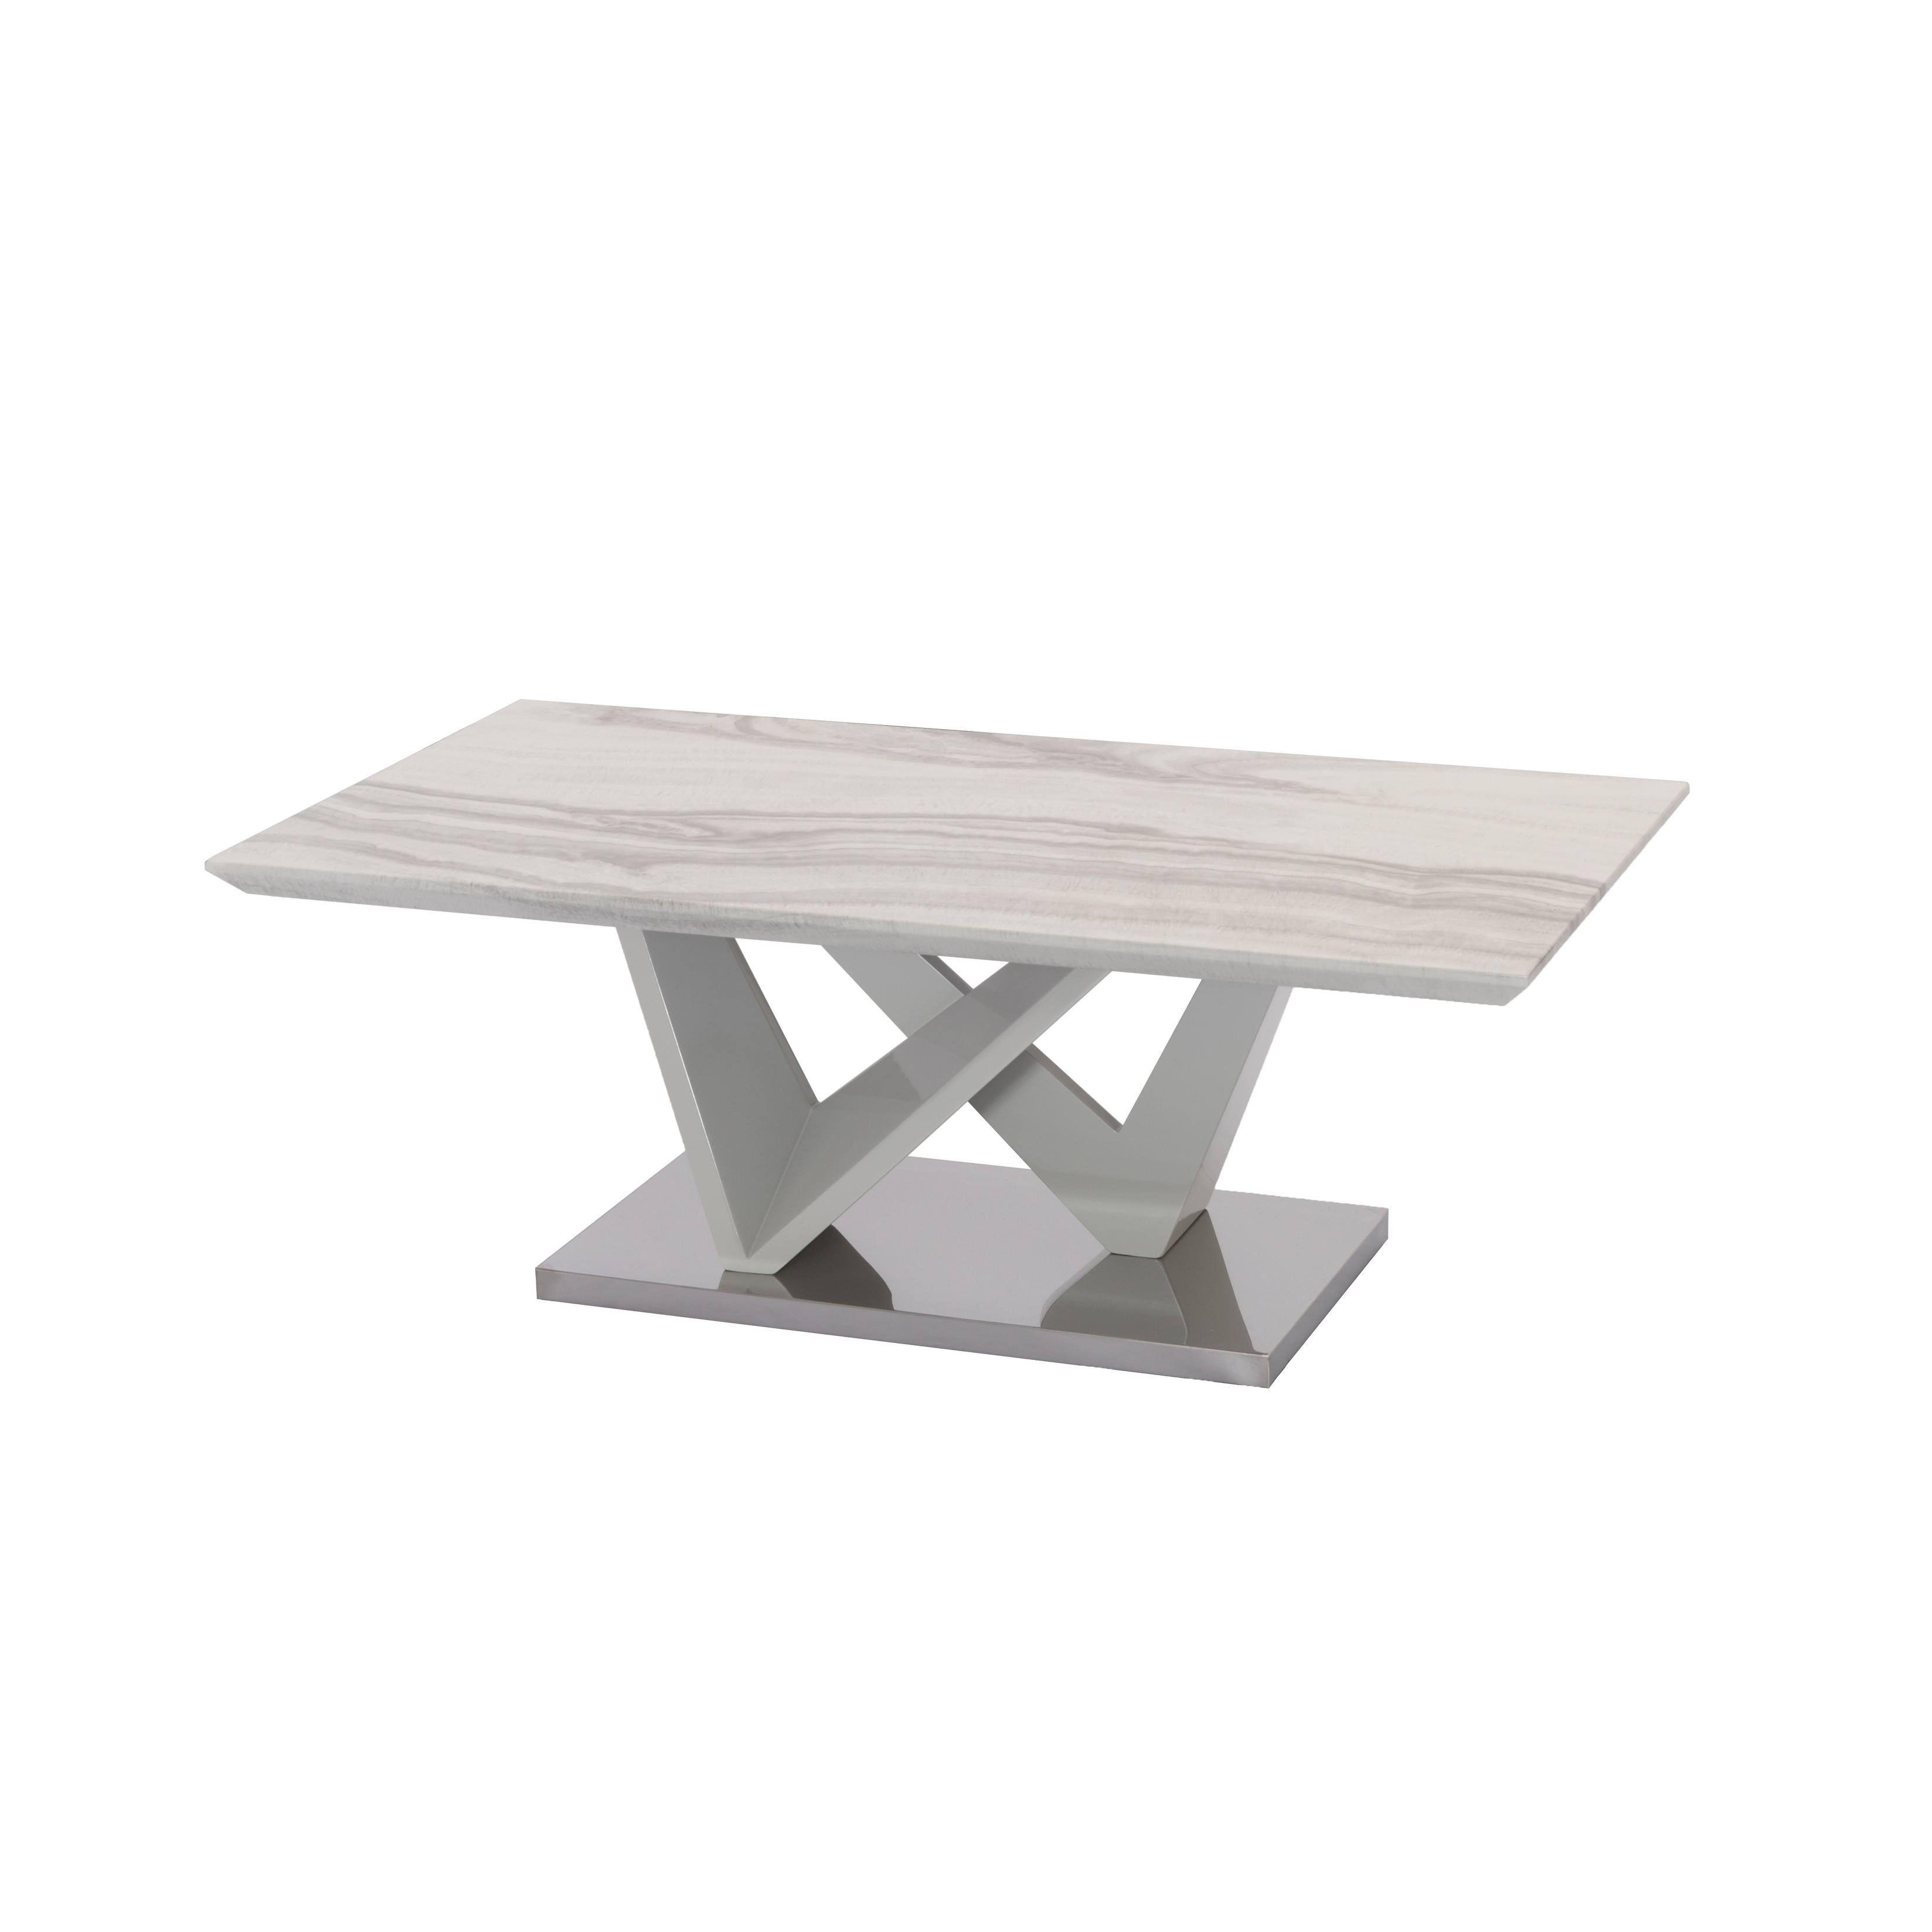 Best Quality Family Marble Coffee Table With Stainless Steel Base Overstock 31758918